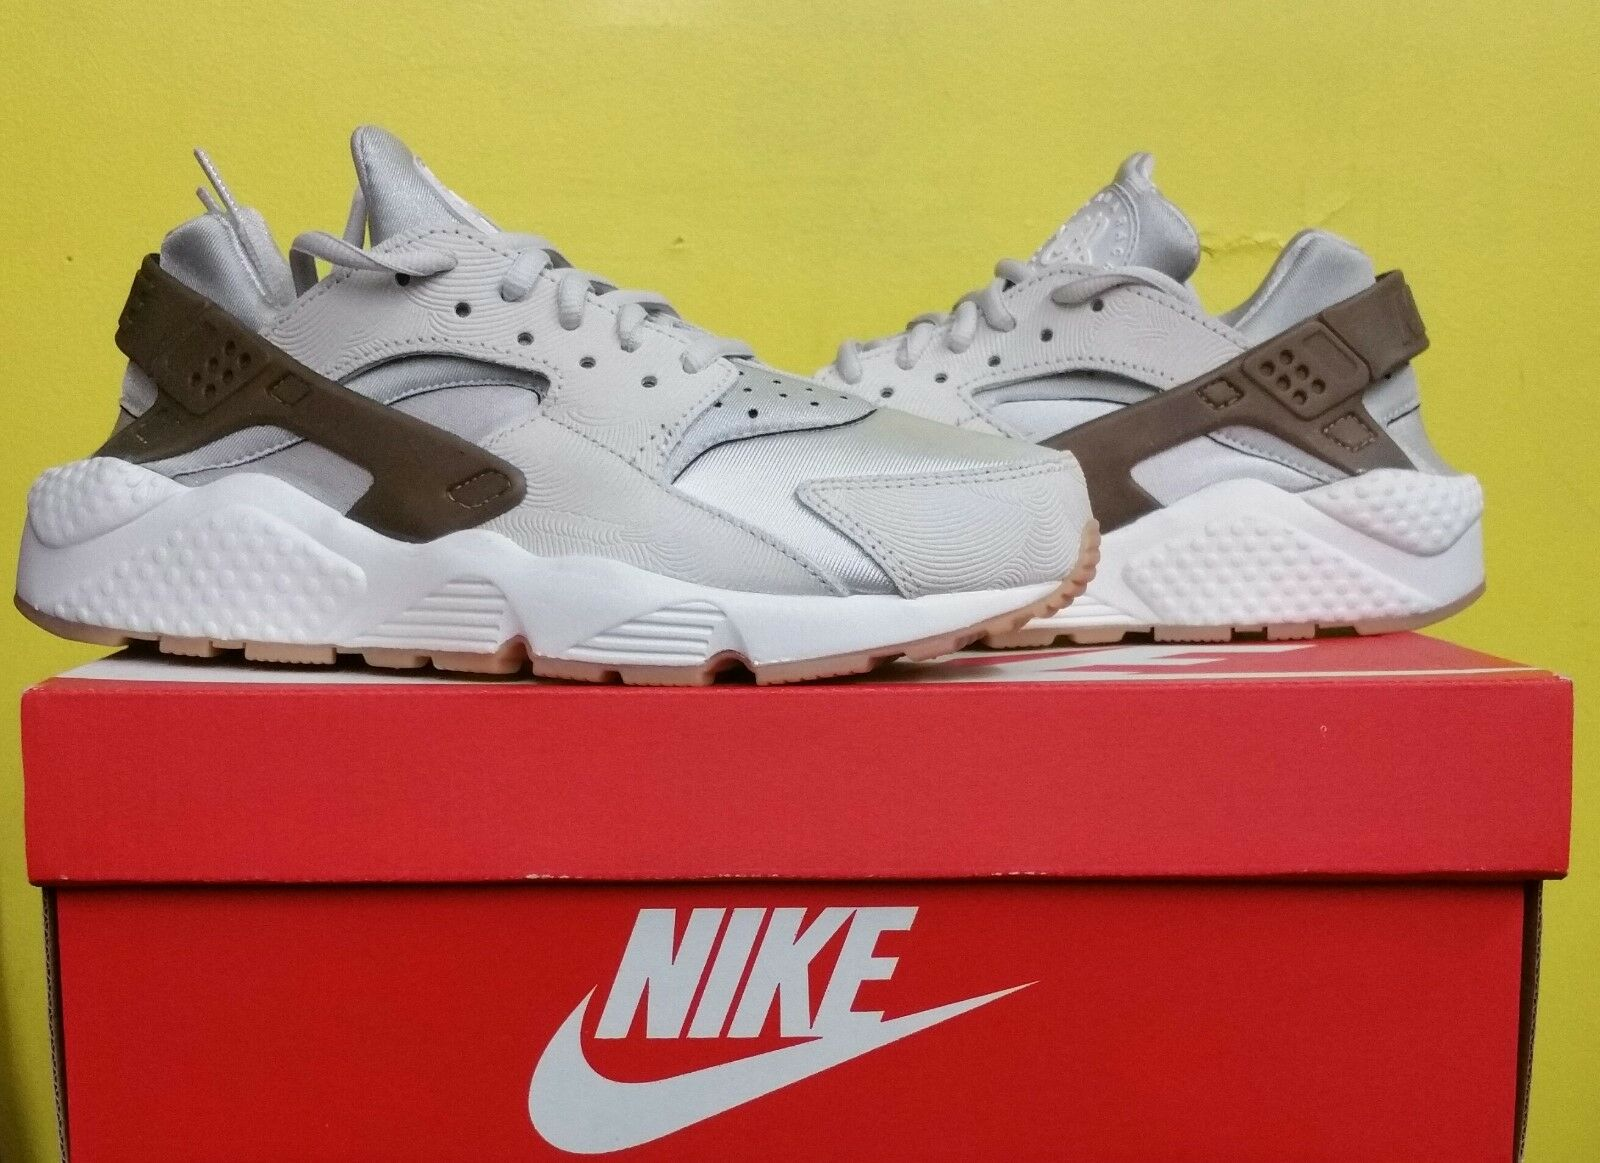 2908042cdb9f NEW Women s Nike Air Huarache Run PRM Suade Sz Sz Sz 6.5 Gamma Grey 833145  001